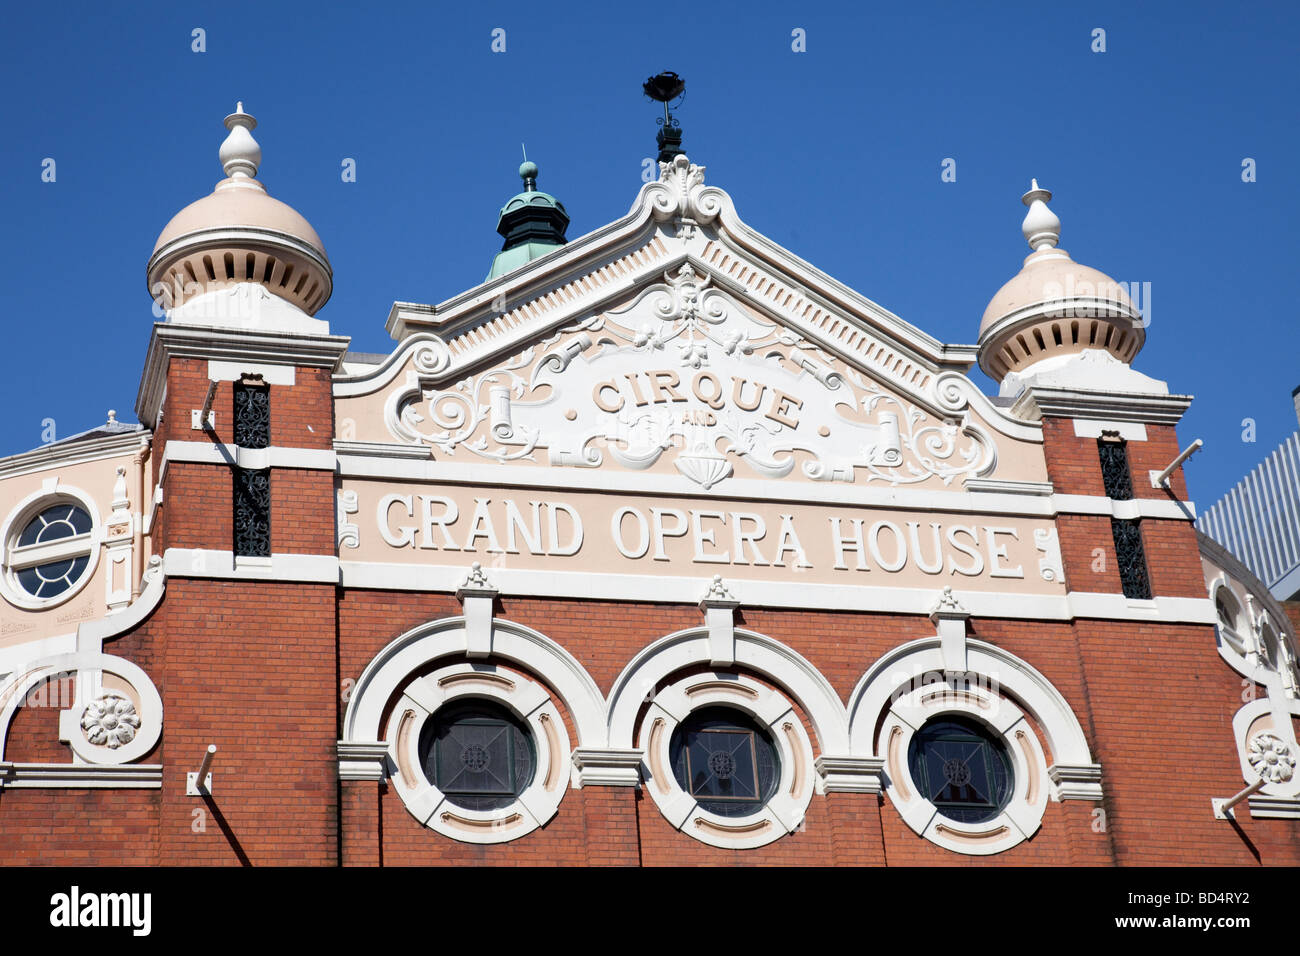 Grand Opera House, ornate Victorian architectural detail, Belfast, Northern Ireland. Designed by Frank Matcham. - Stock Image